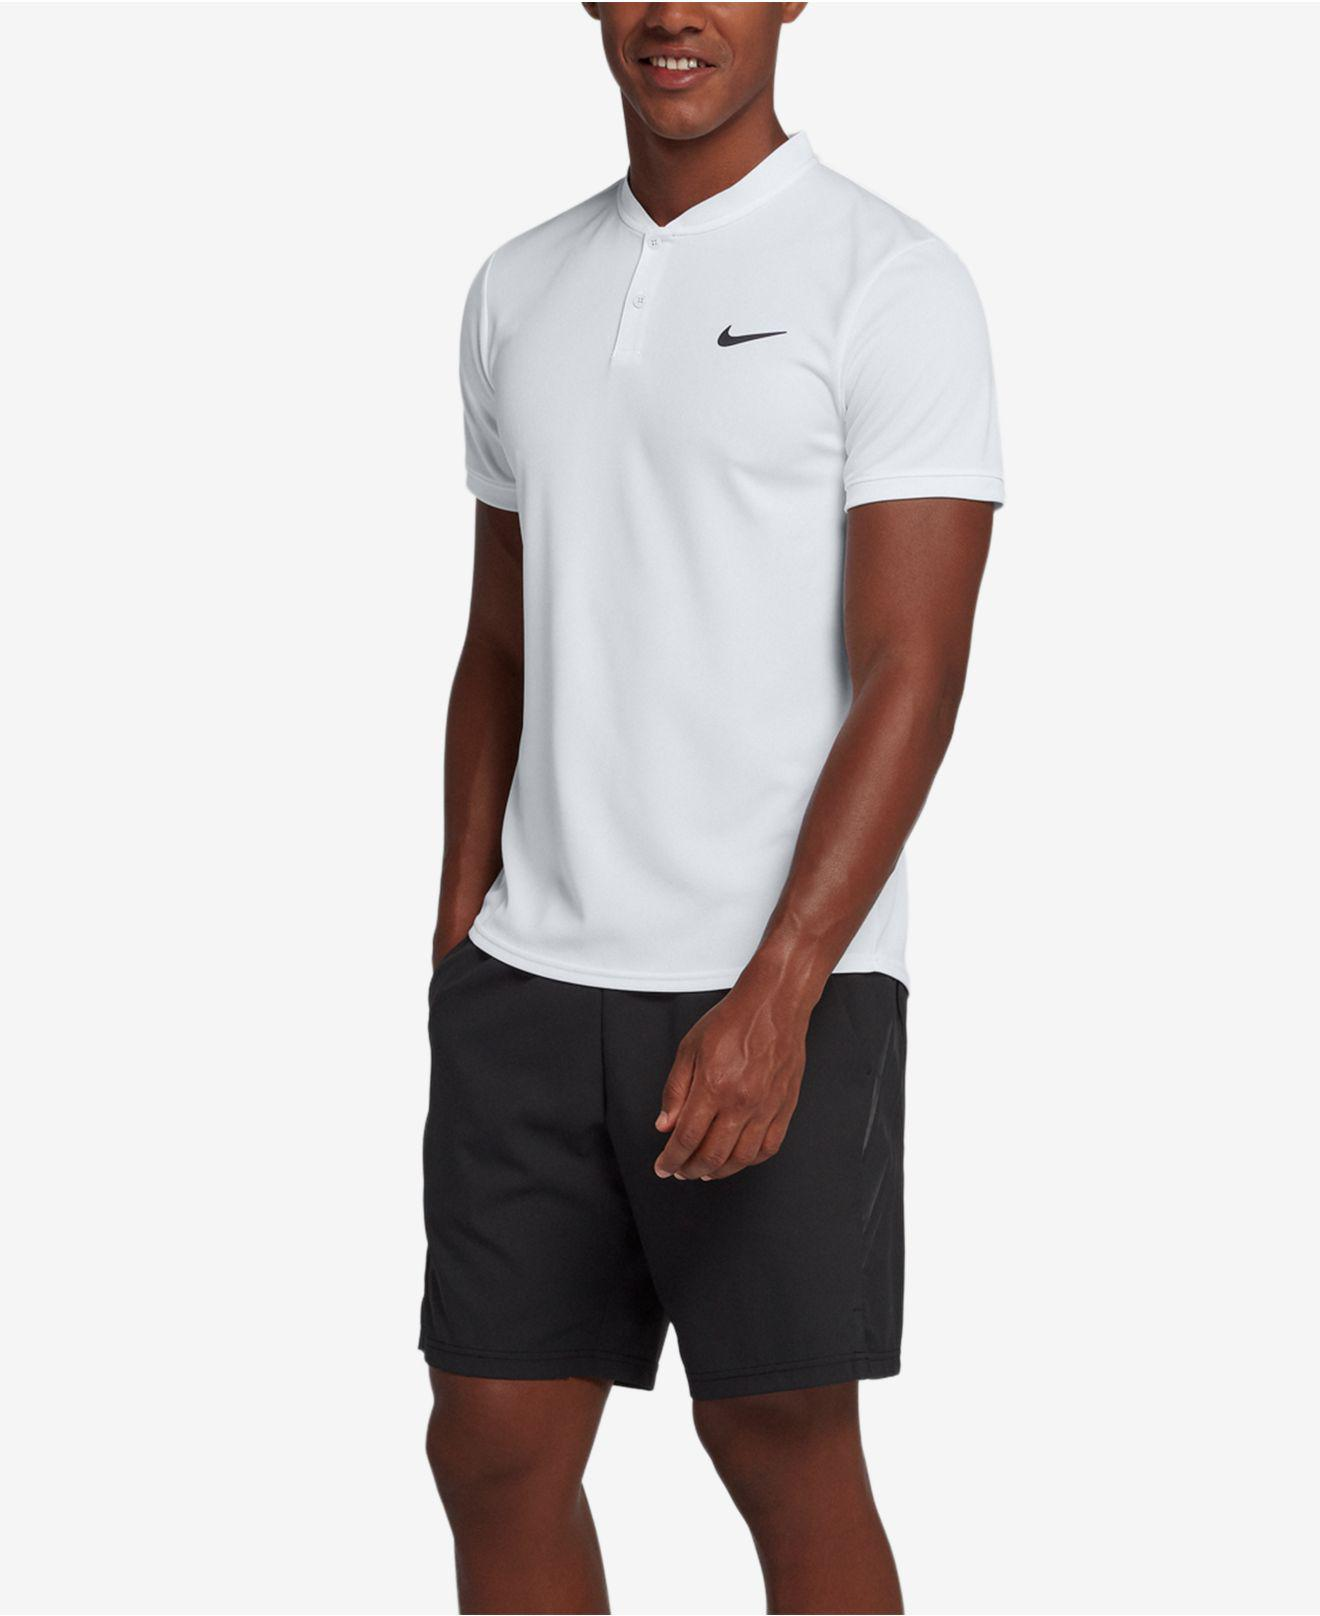 35e7c2c95 Nike Court Dry Blade-collar Tennis Polo in White for Men - Lyst